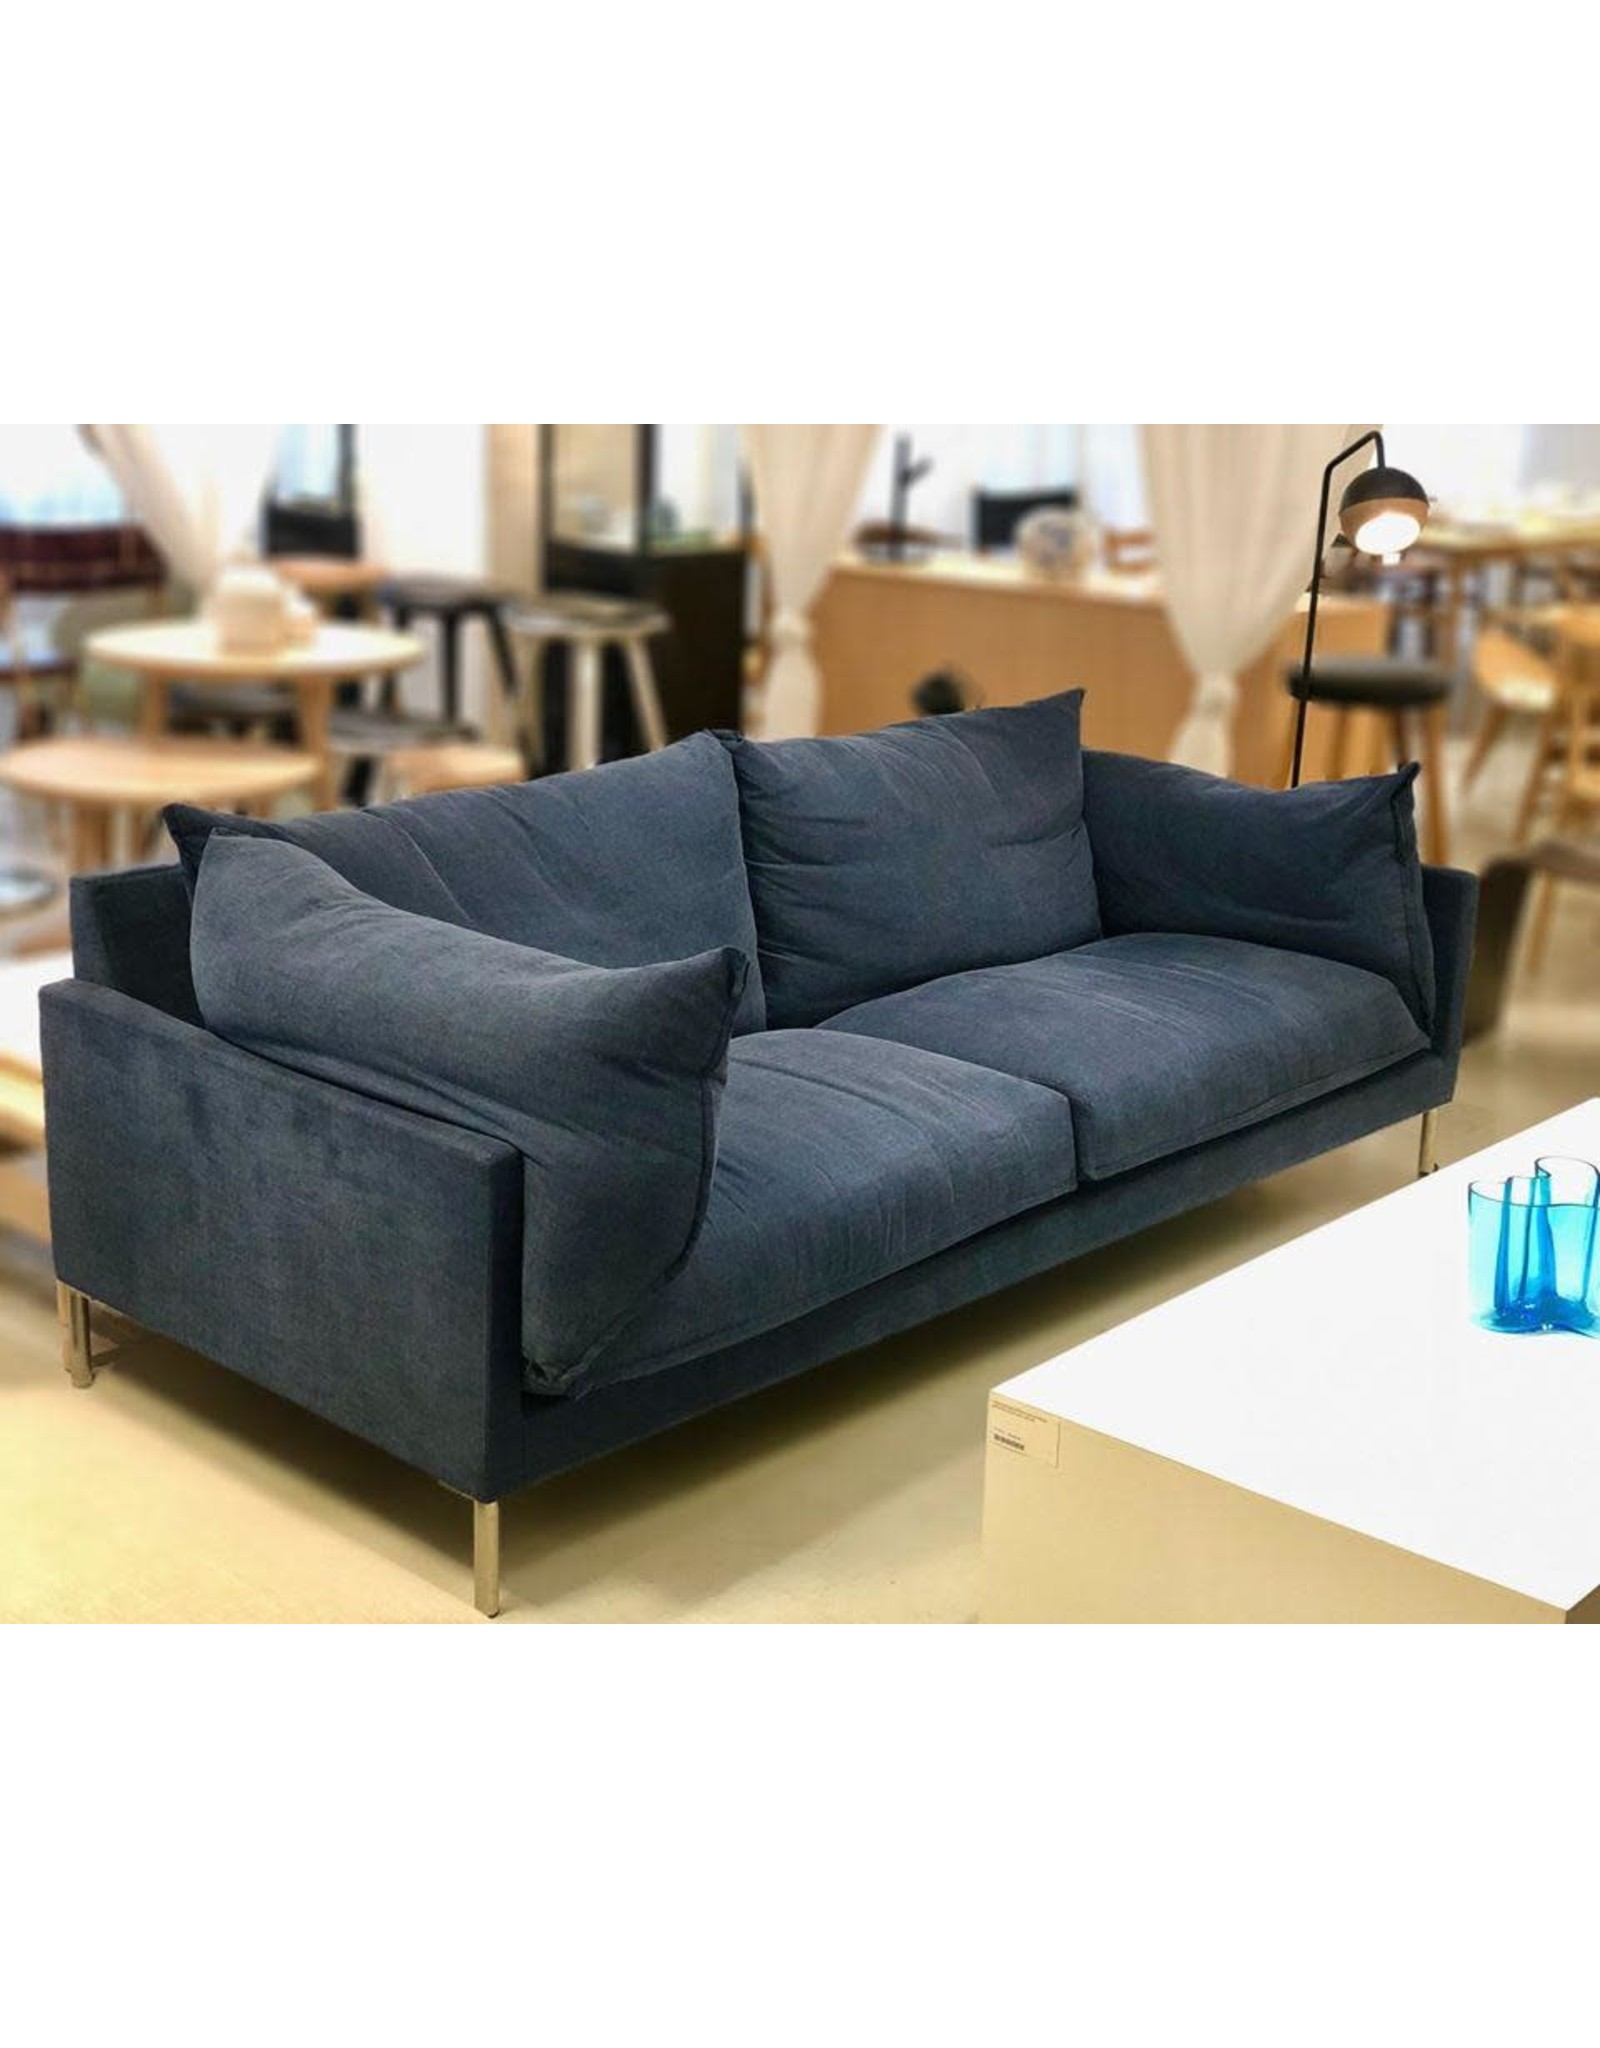 BUTTERFLY SOFA IN BLUE FABRIC